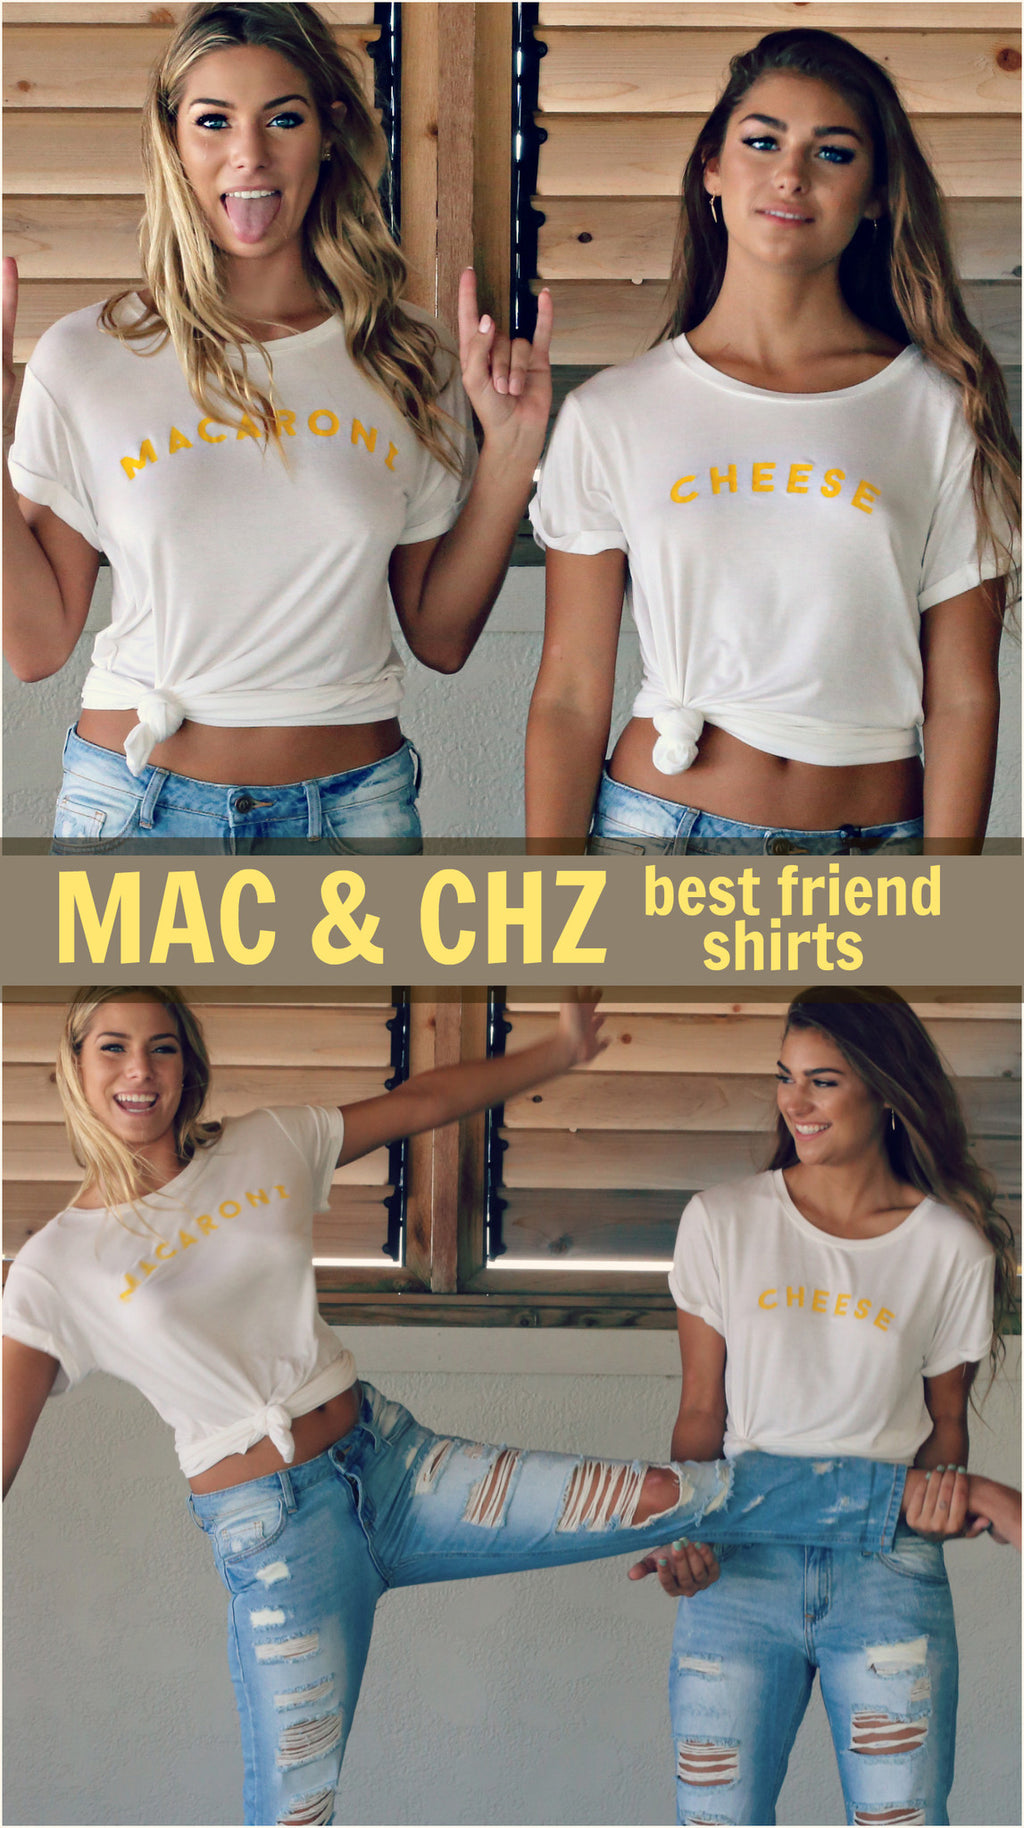 Macaroni and Cheese Best Friend Shirts